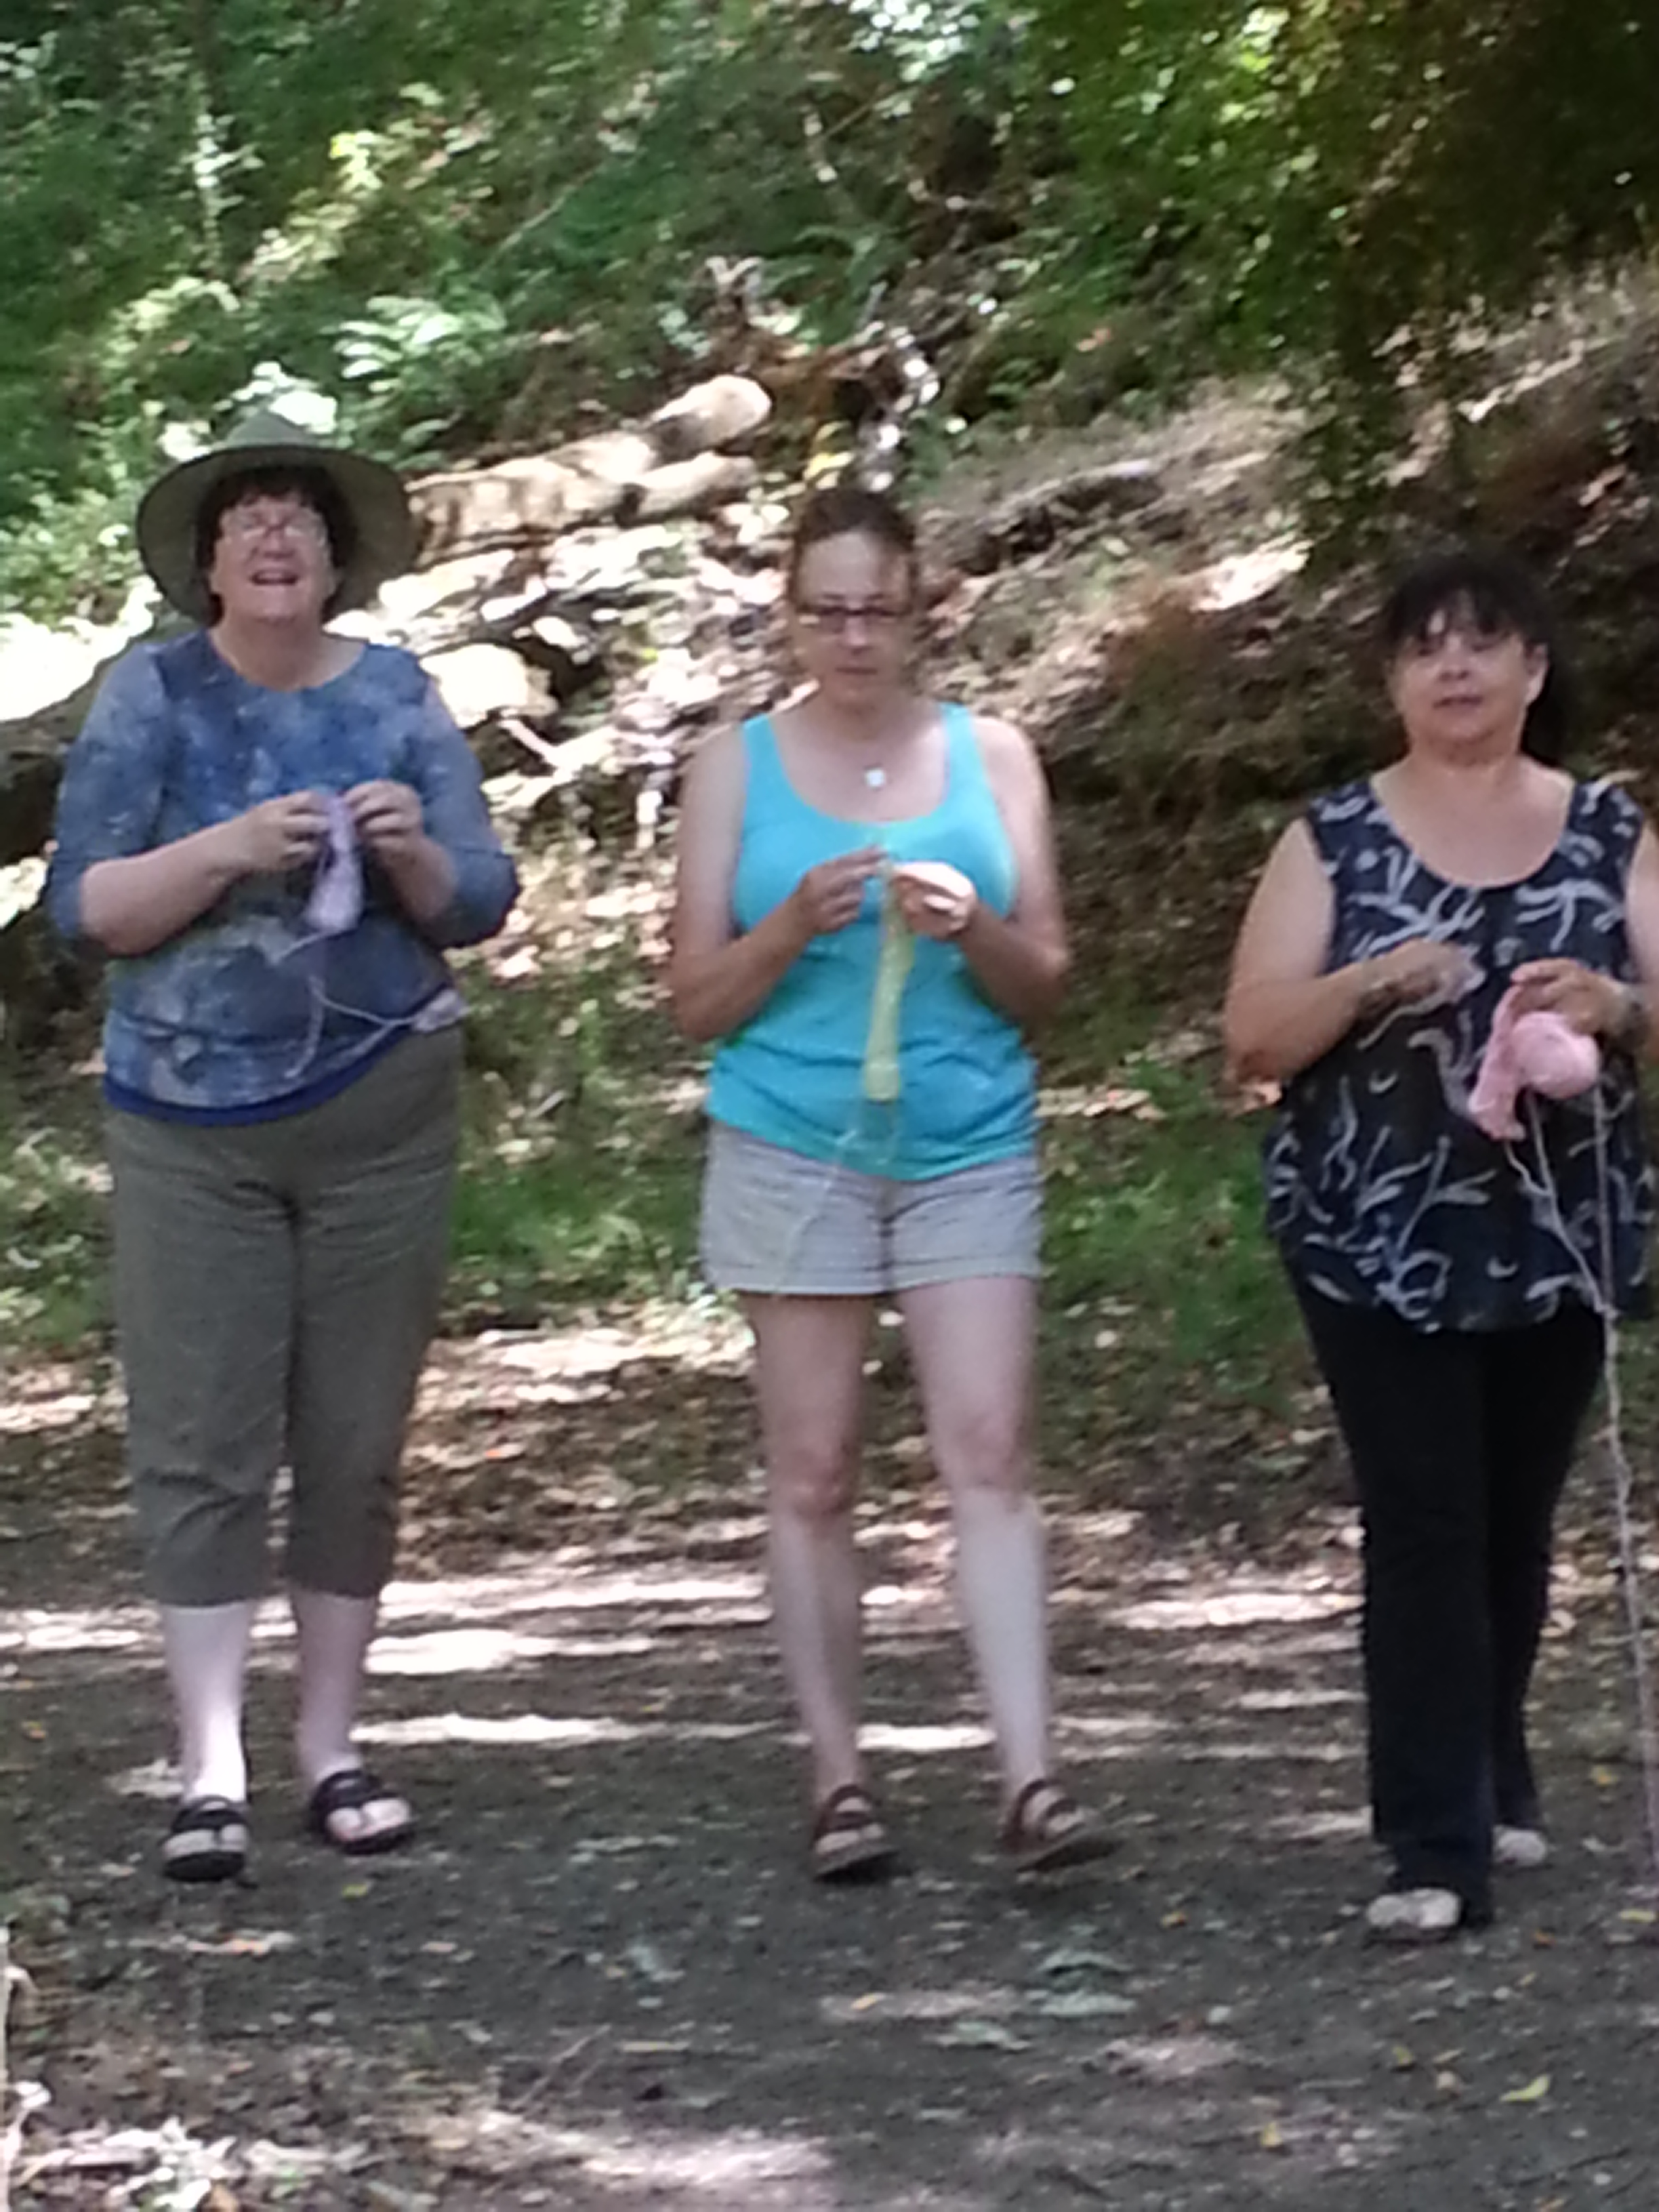 The Marin Gals loving the forest as they walk and knit.